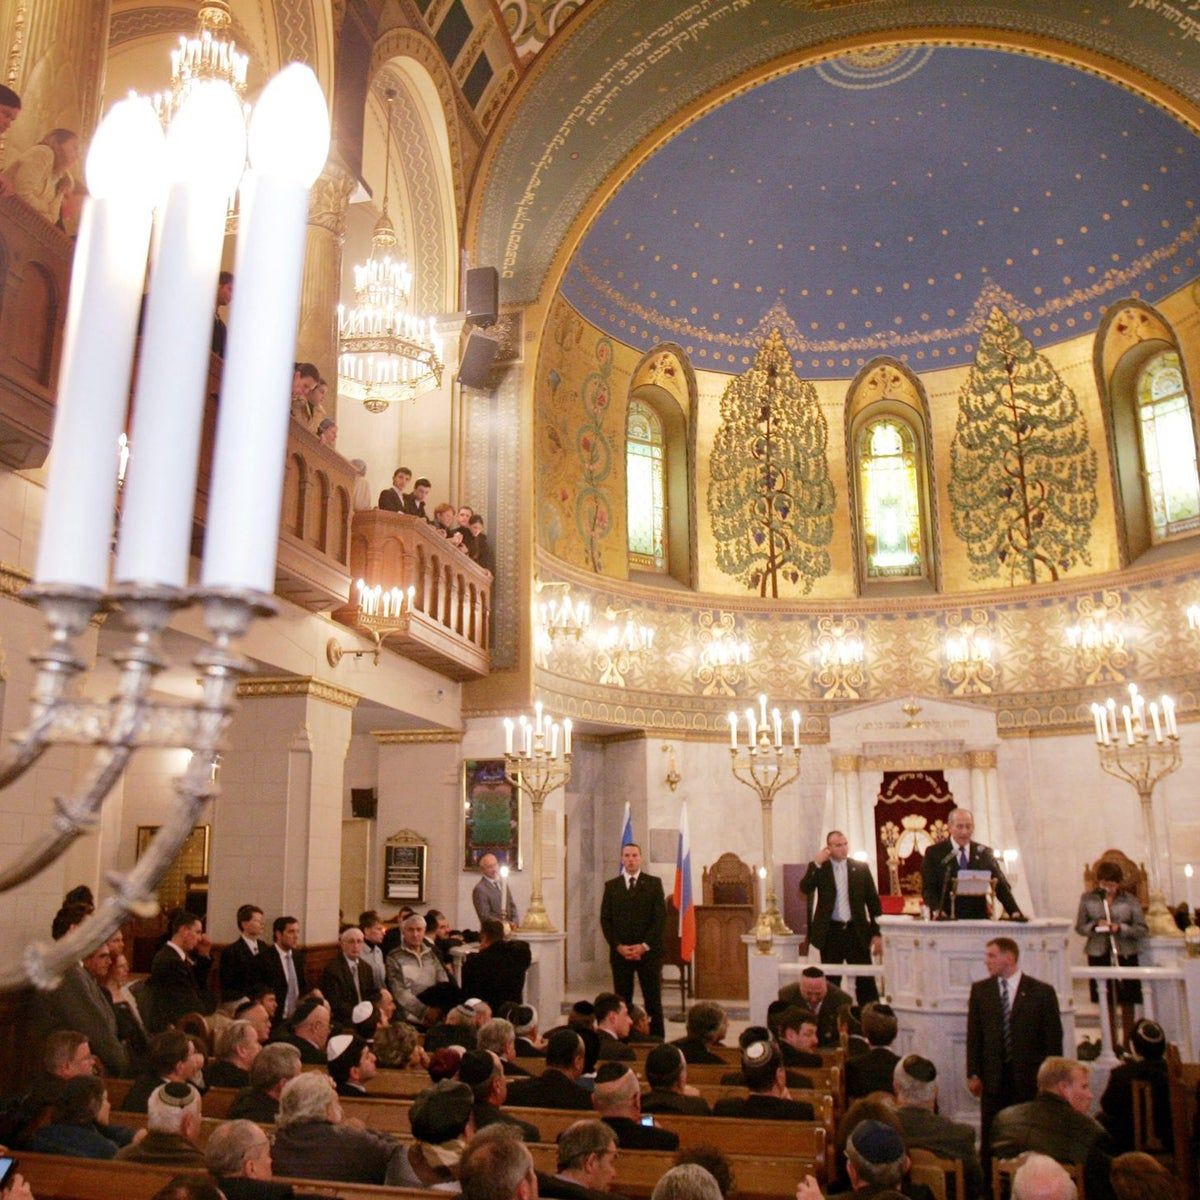 Israel's then-Prime Minister Ehud Olmert speaking during a ceremony to mark the 100th anniversary of Moscow's Choral Synagogue, October 2006.